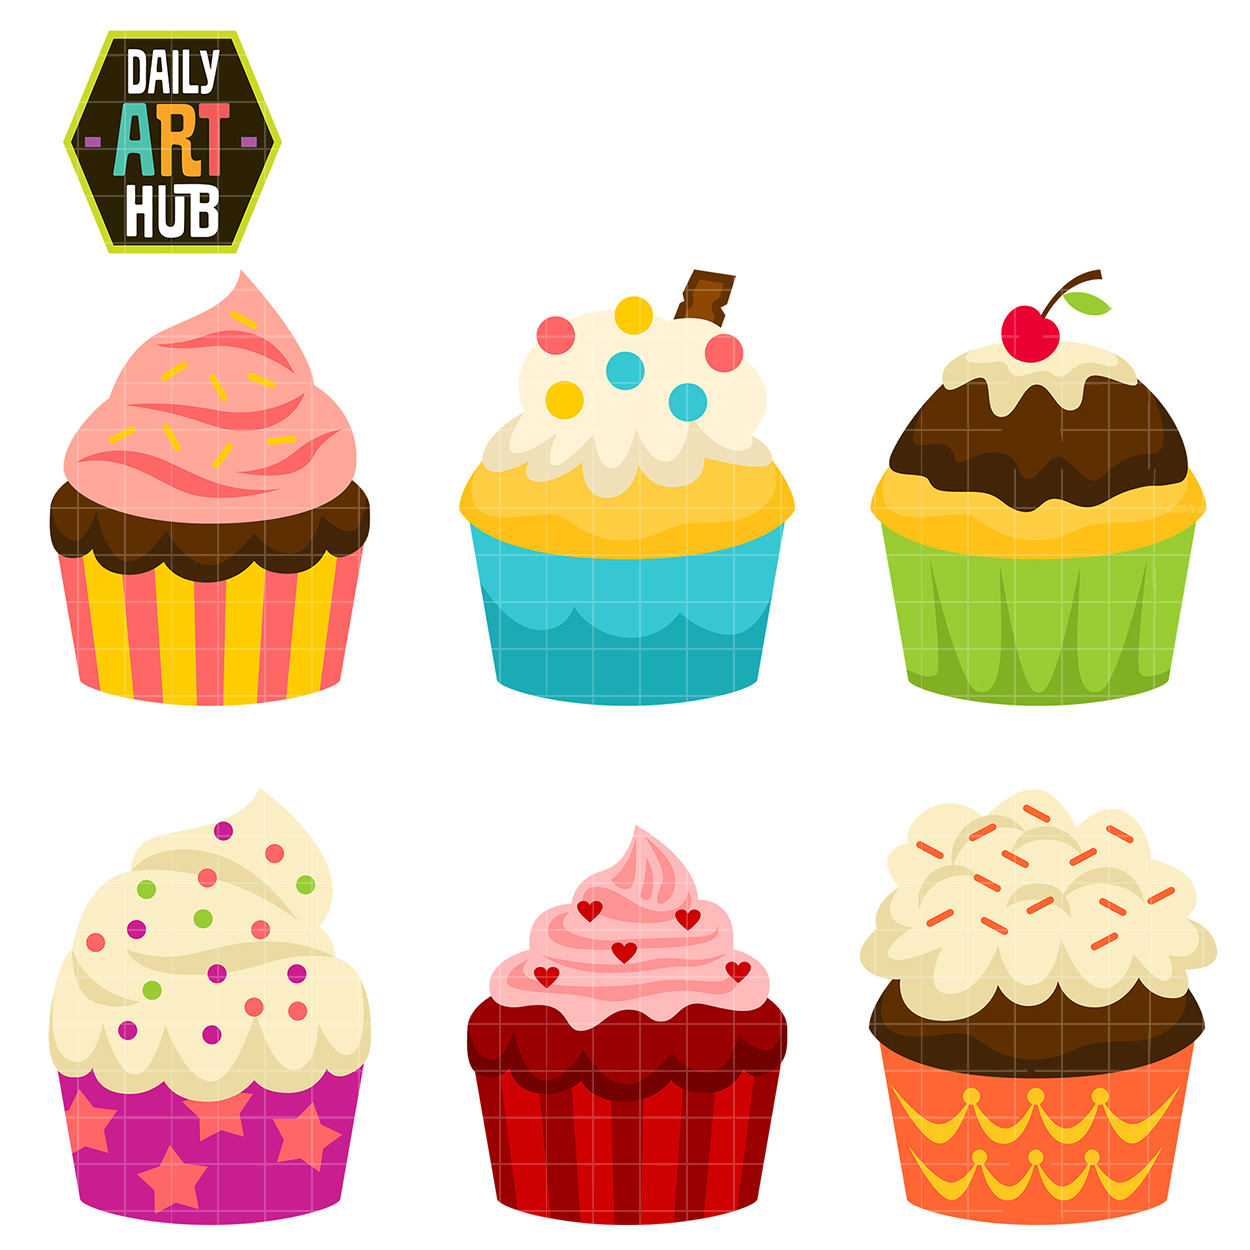 Cup cakes clipart 20 free Cliparts | Download images on ...